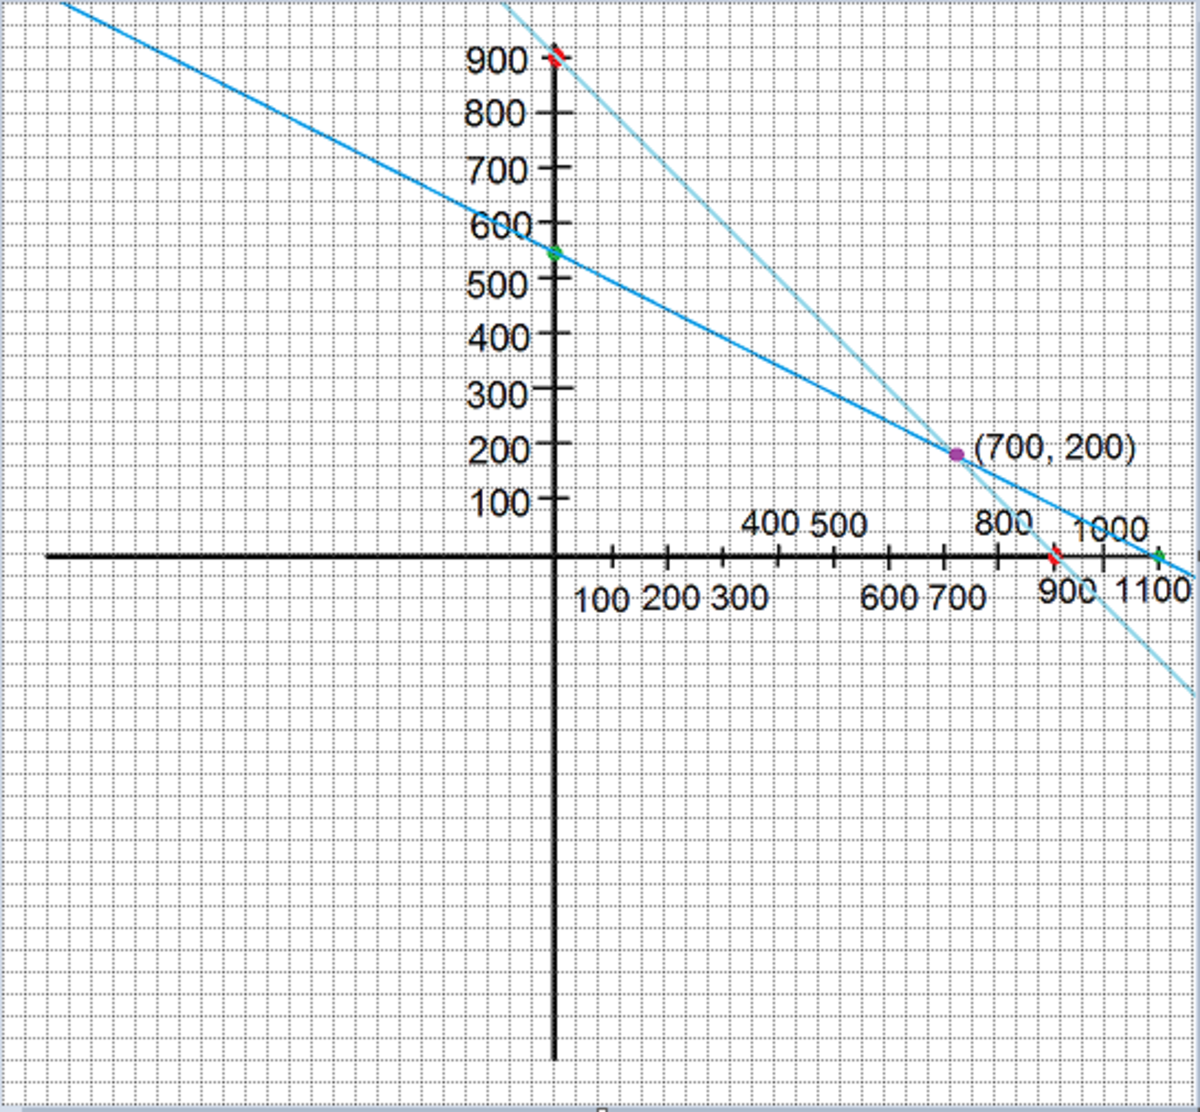 The answer to the equation system is the intercsection between the two lines, in this case 700 in x and 200 in y.